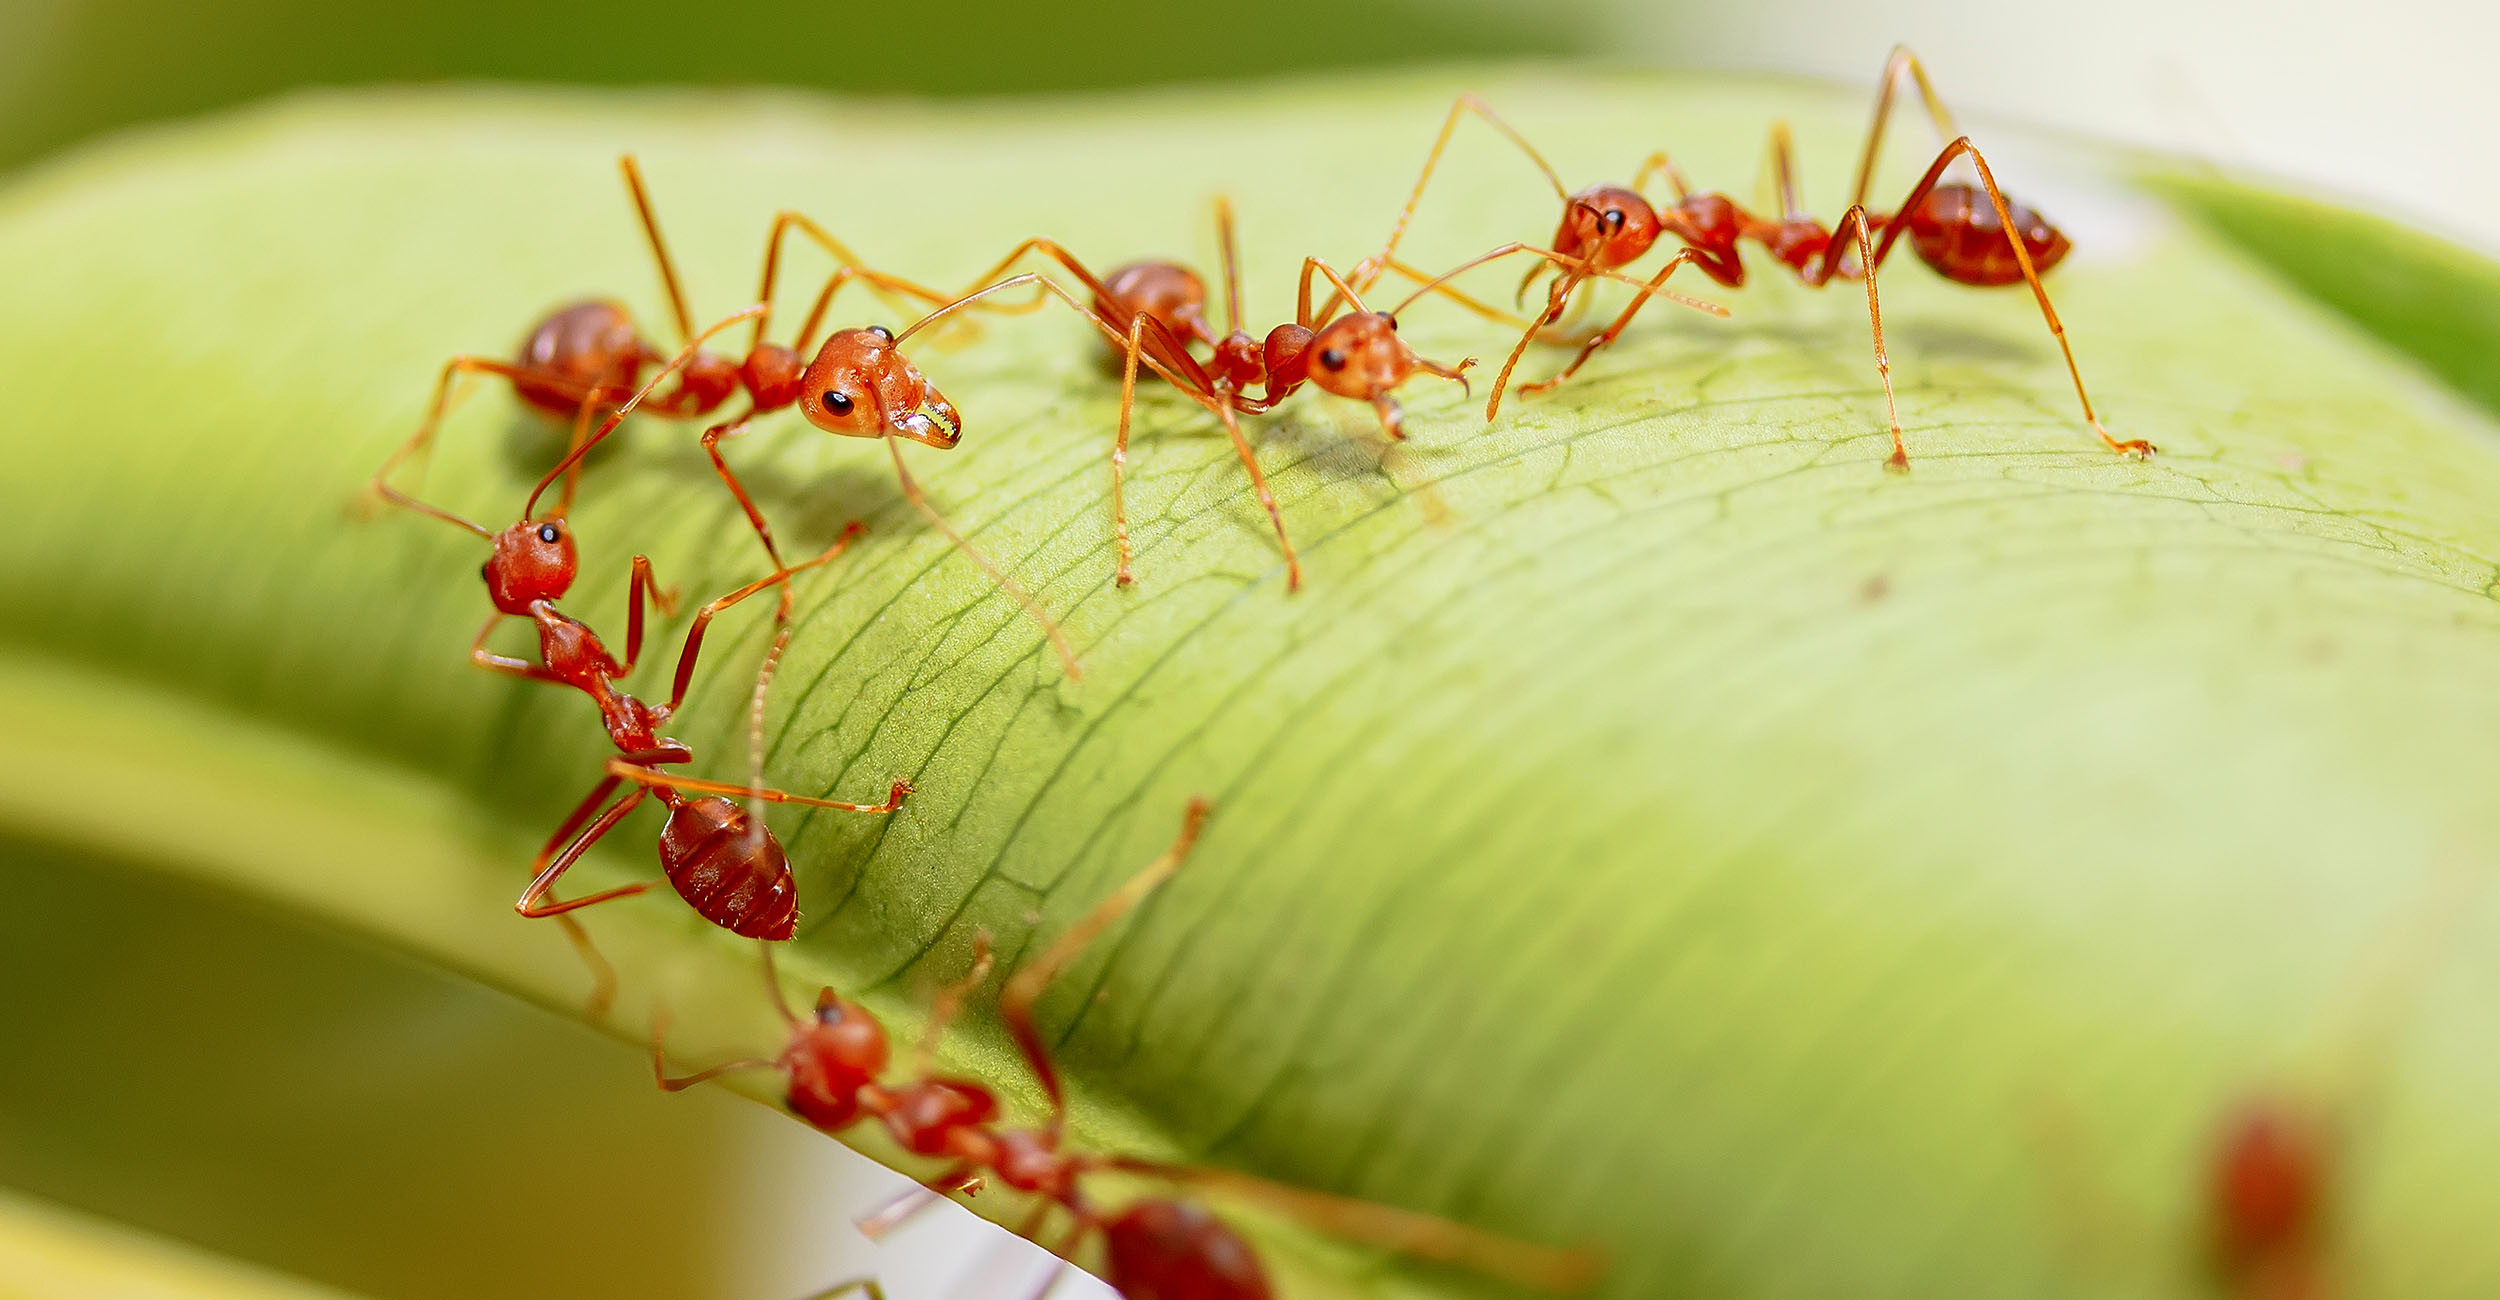 Photo of red imported fire ants linking up to crawl over a plant.